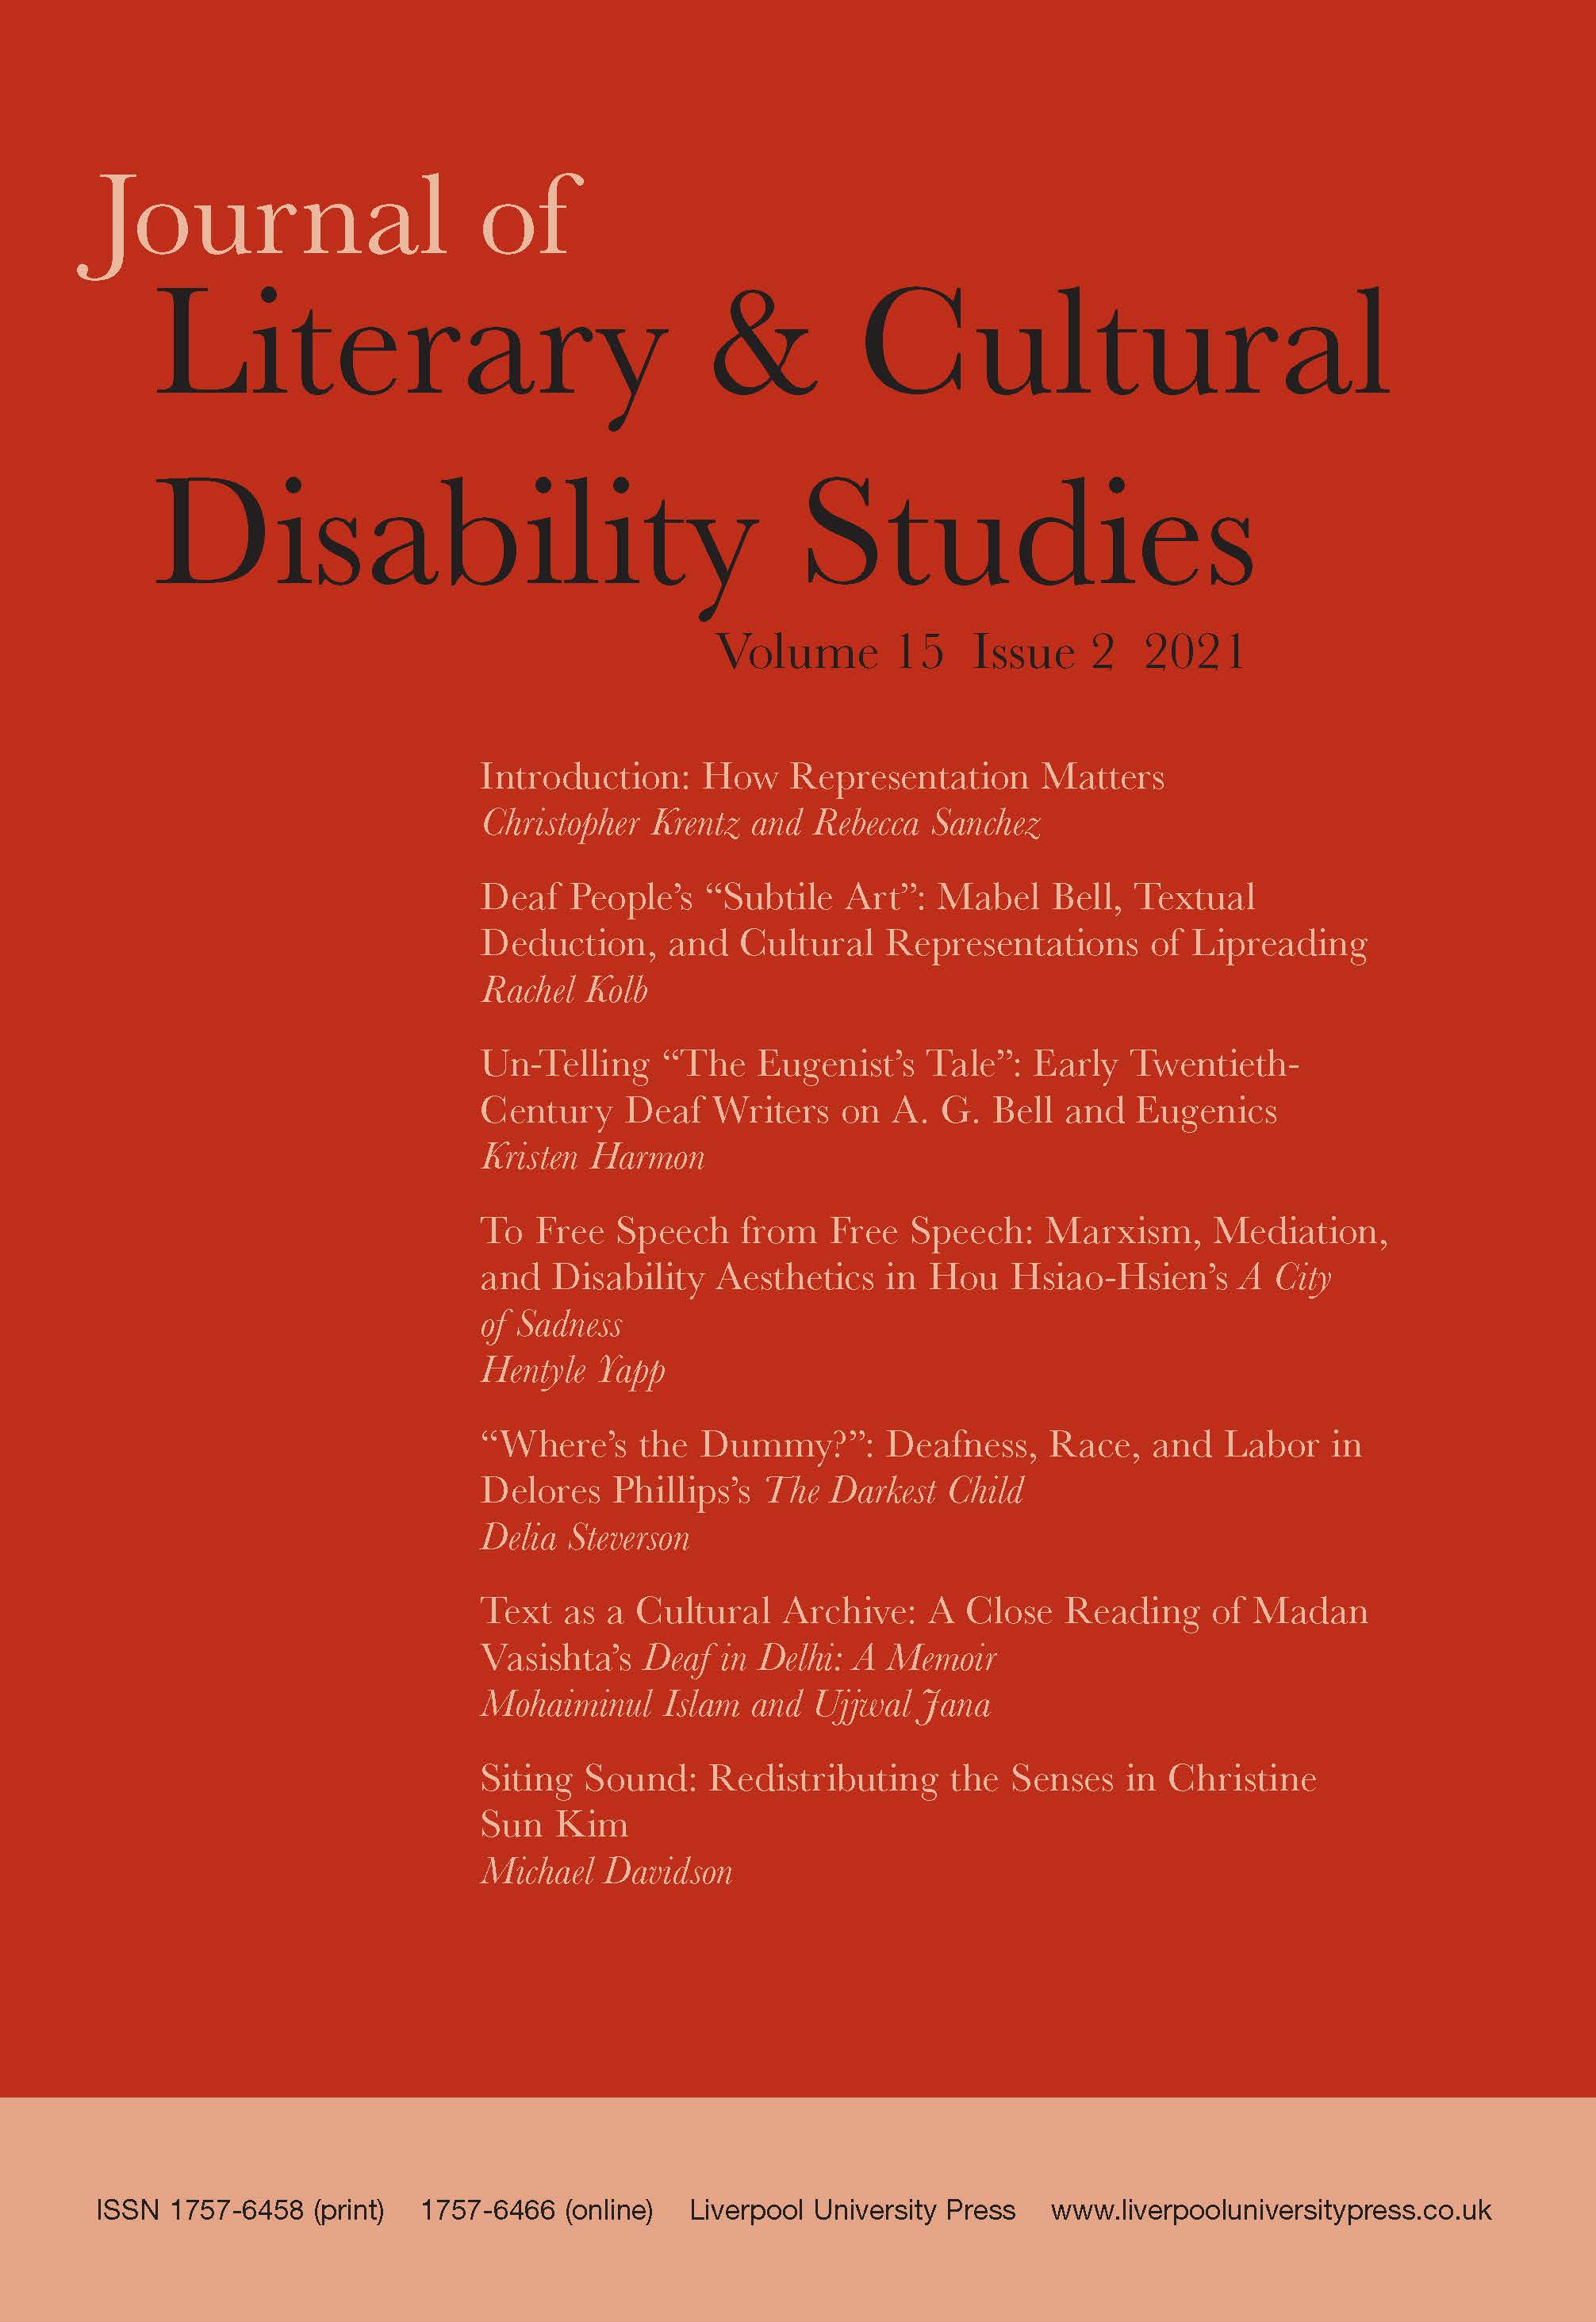 Journal of Literary & Cultural Disability Studies: Volume 15, Issue 2, 2021